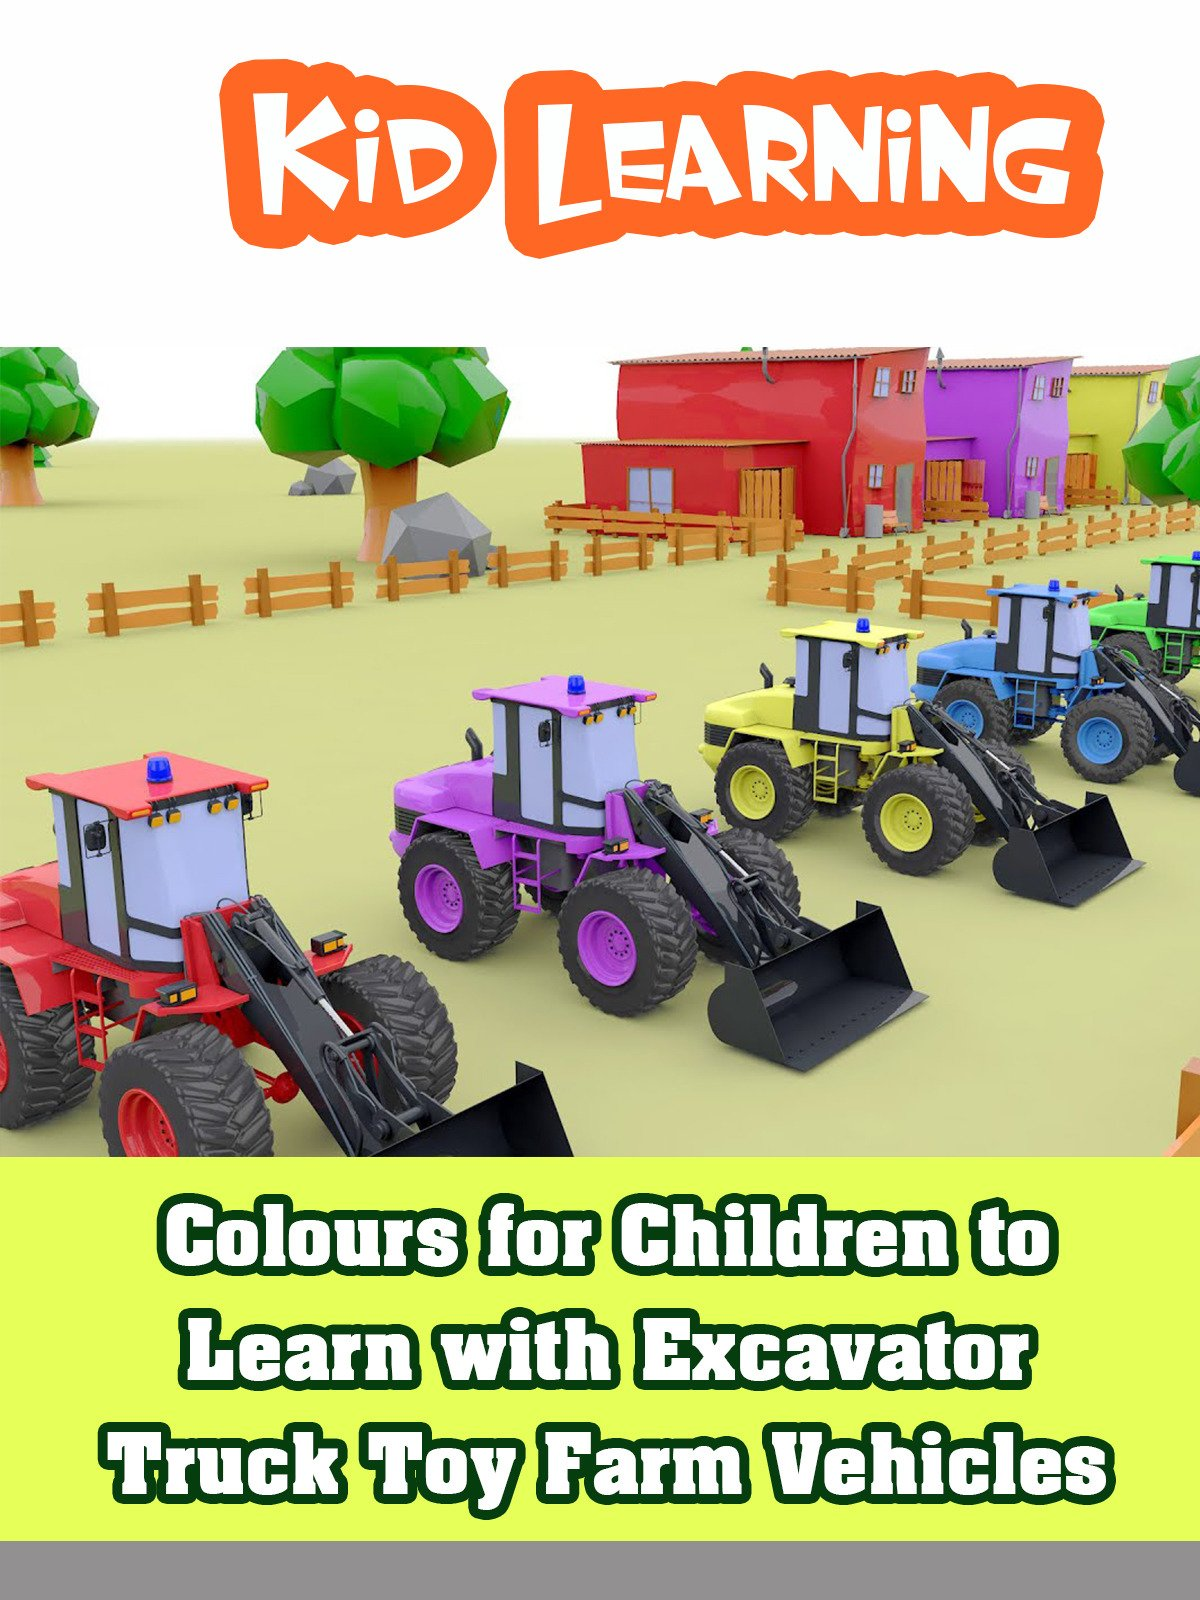 Colours for Children to Learn with Excavator Truck Toy Farm Vehicles